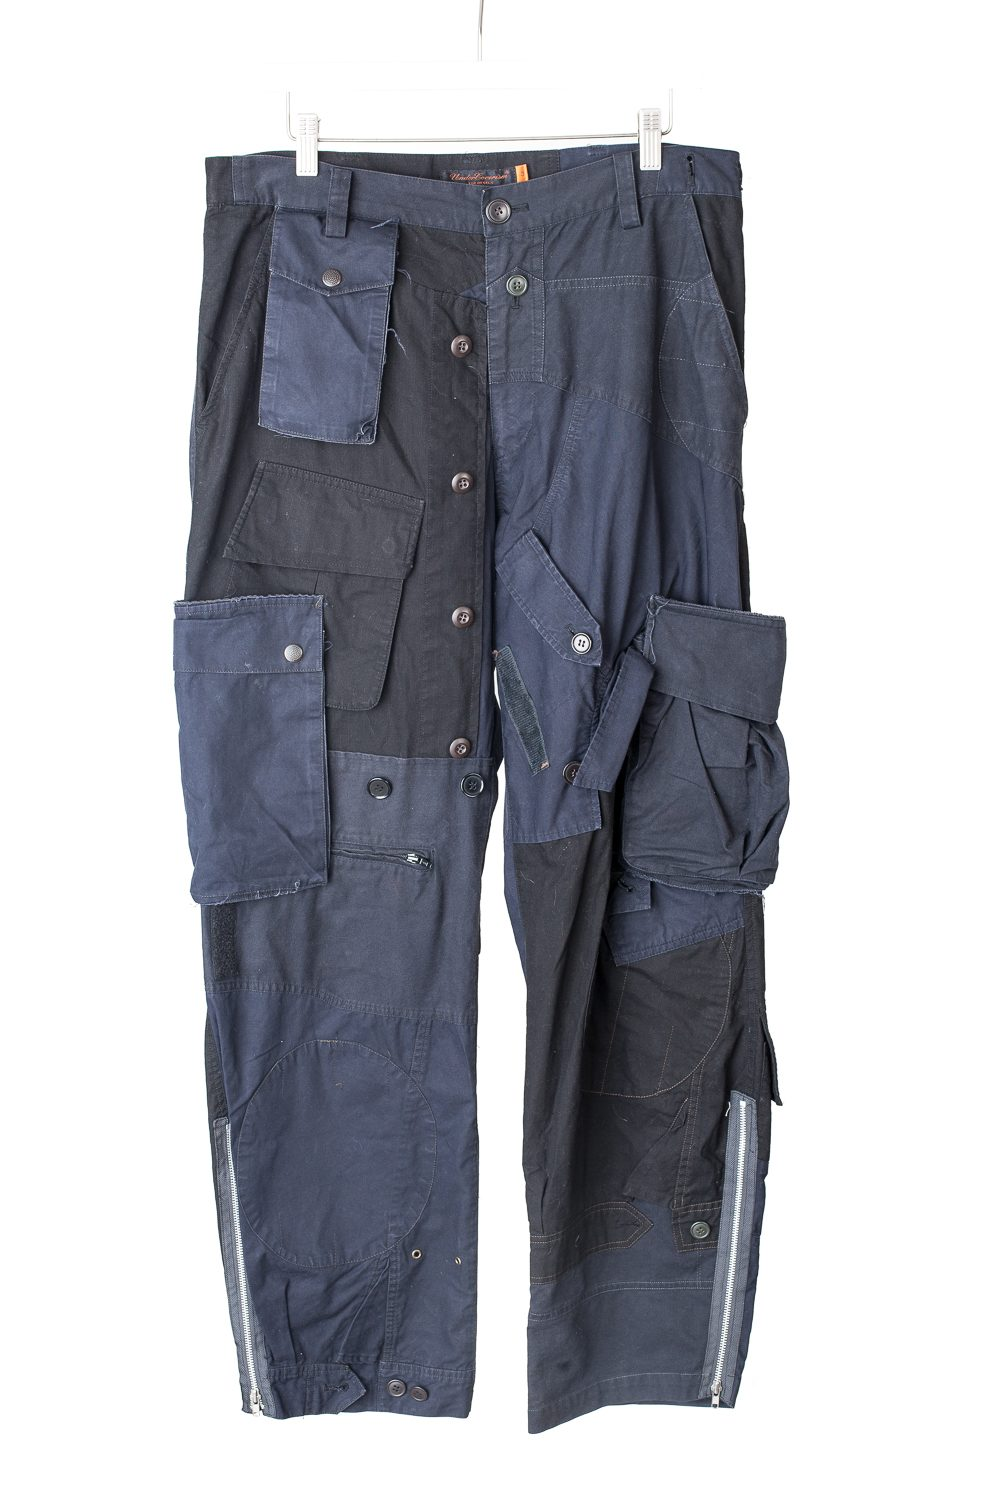 "SS05 ""But Beautiful II"" Reconstructed Military Pants"